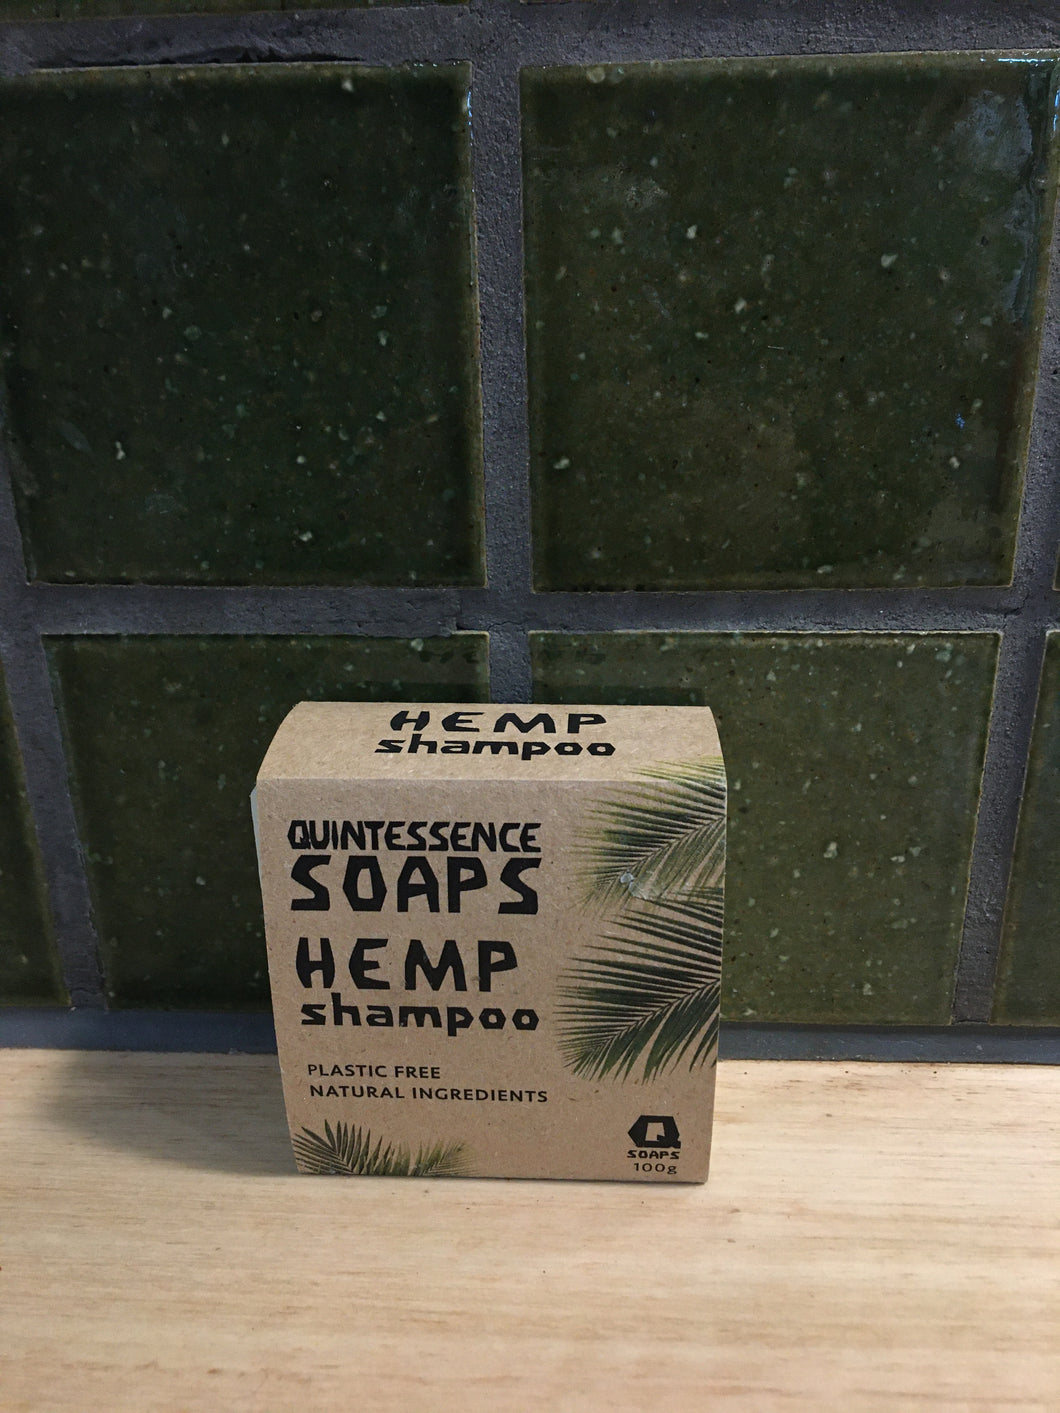 Quintessence Soaps - Hemp Shampoo Bar 100g